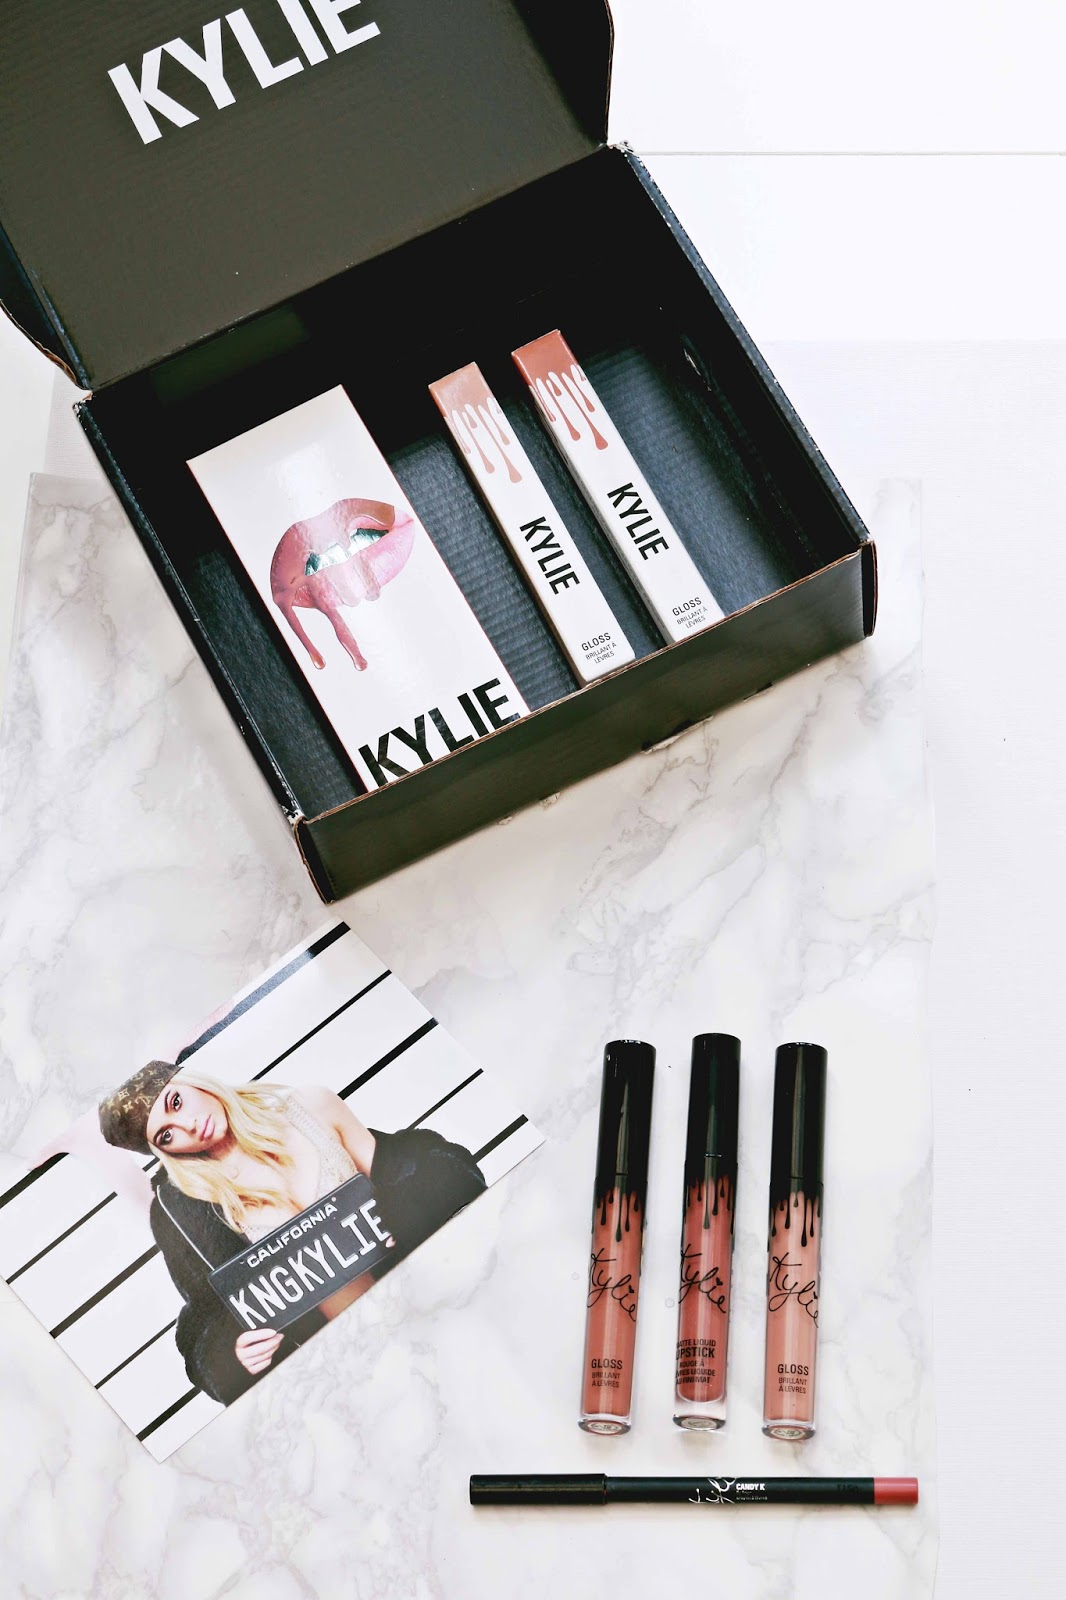 Kylie Jenner Lip Kits & Glosses Review